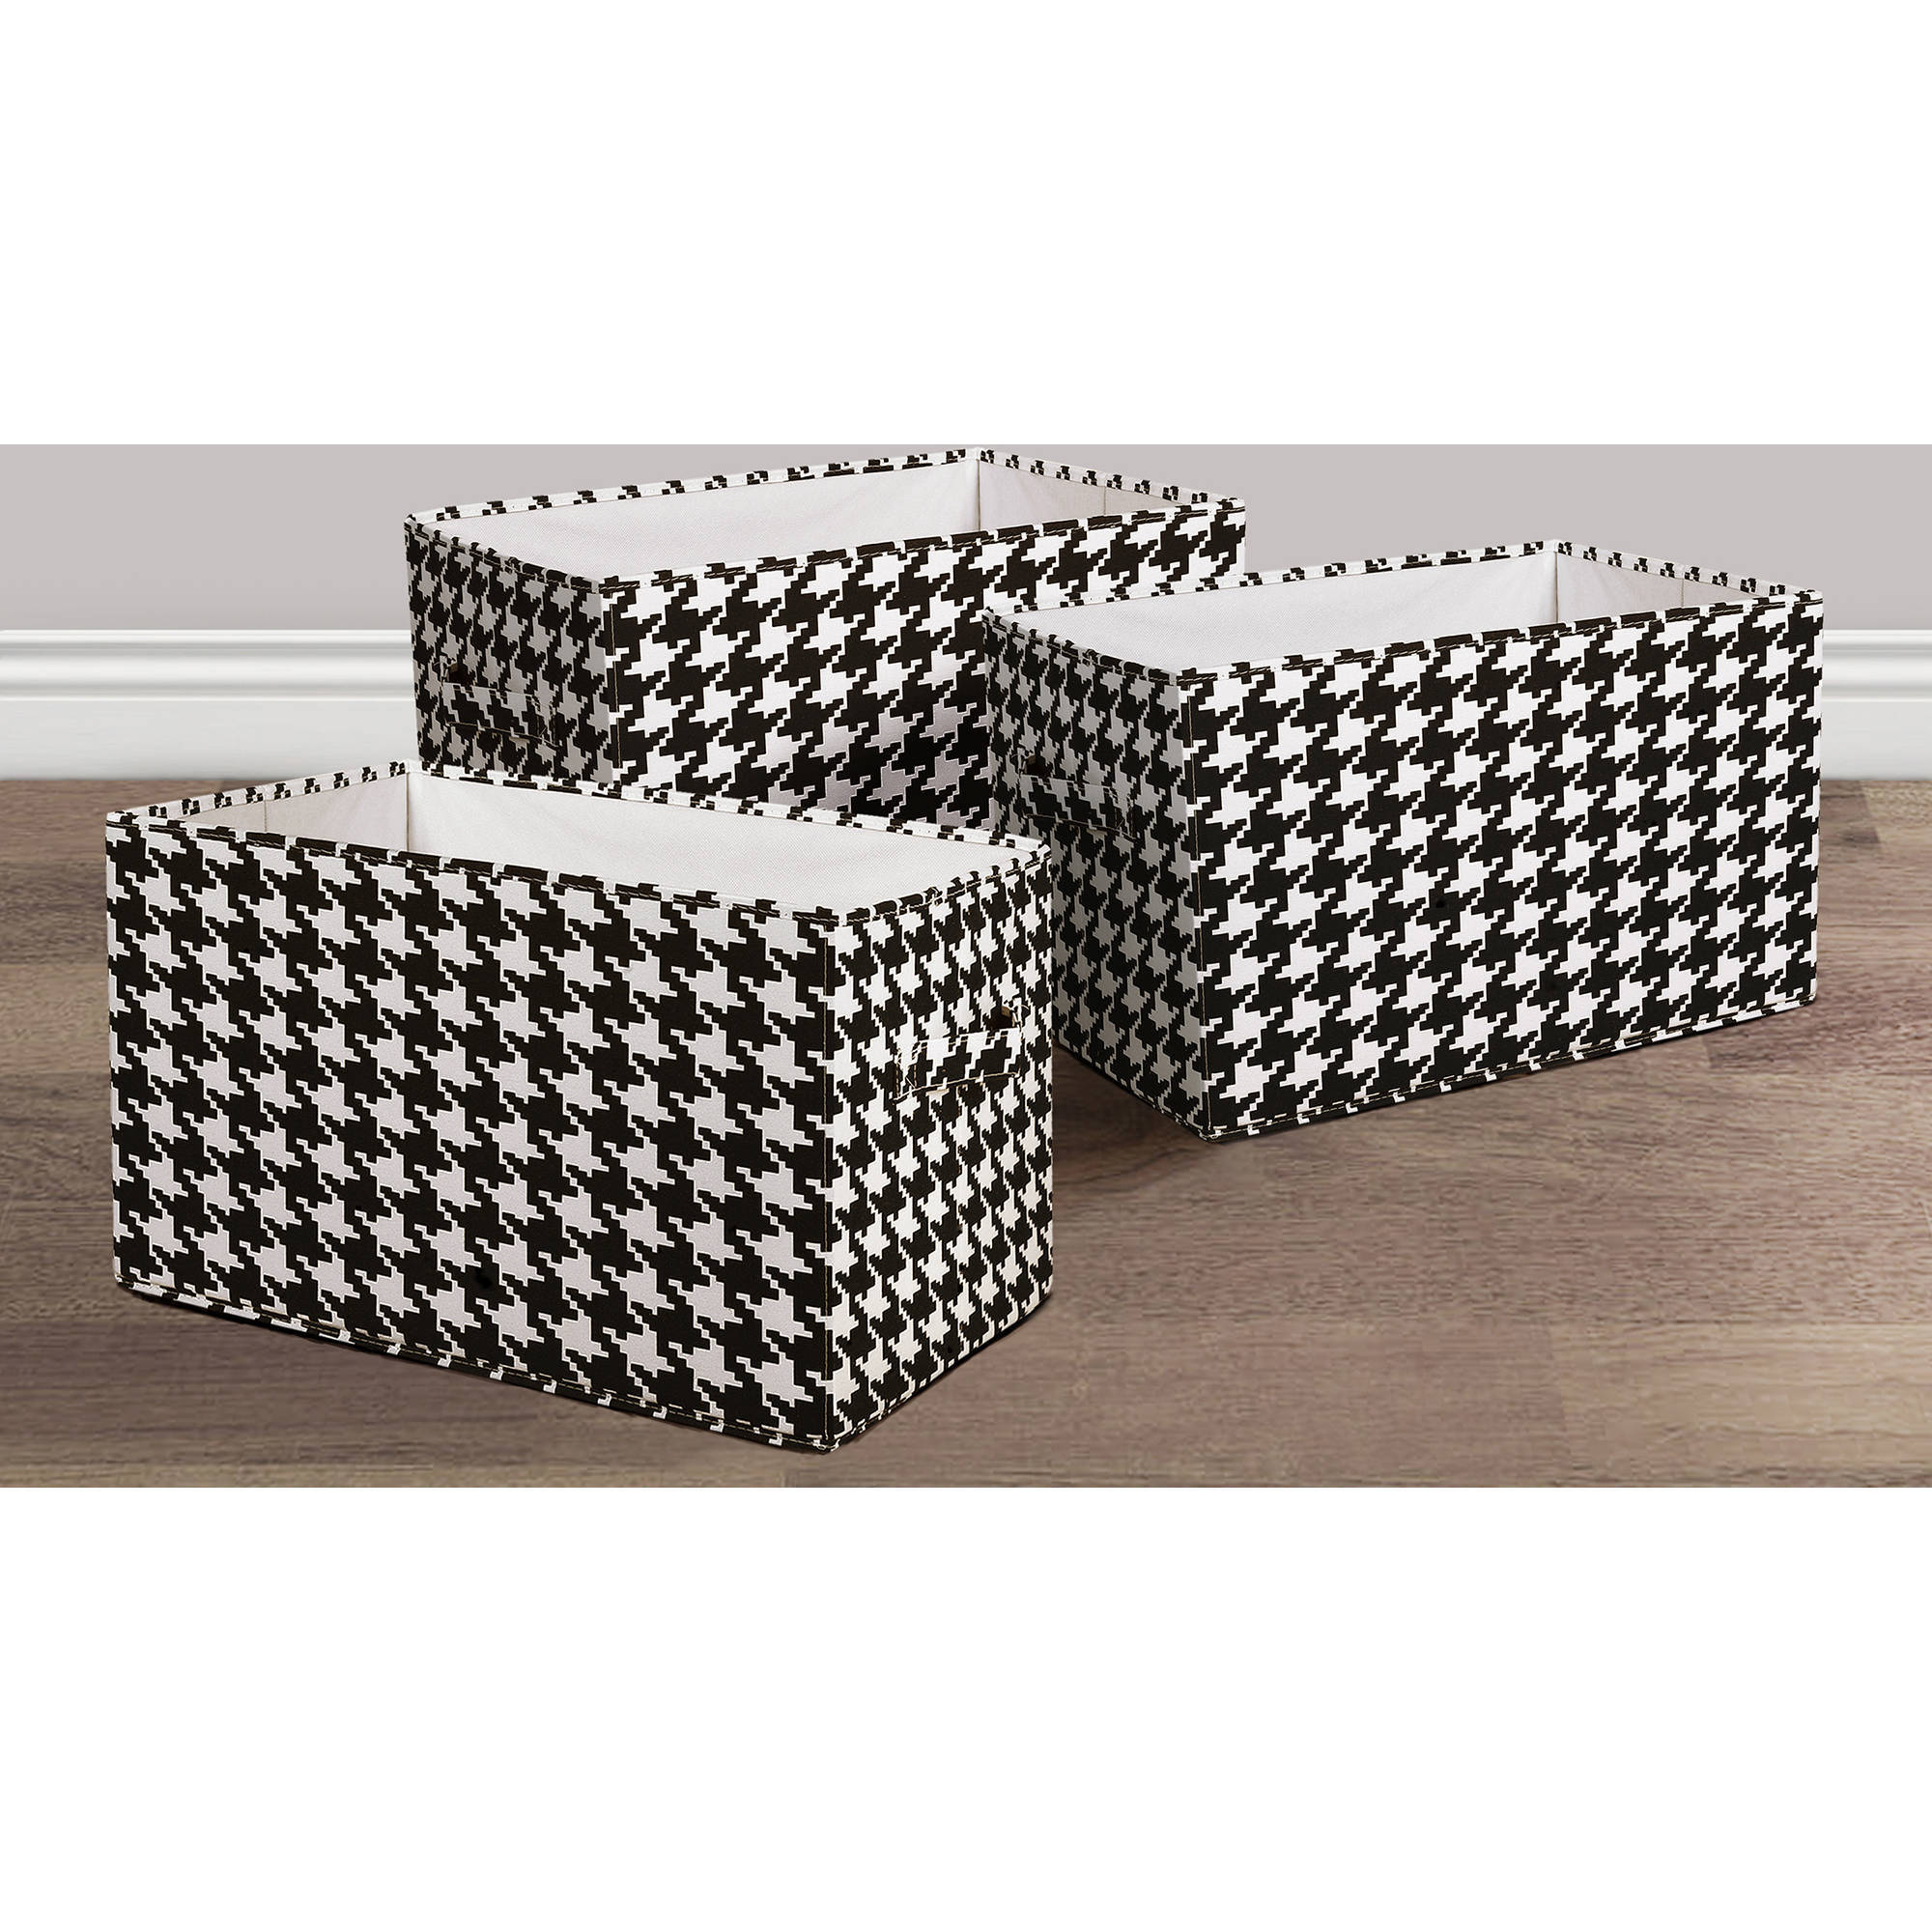 Houndstooth Fabric Covered Collapsible Box Black/White 3-Piece Set